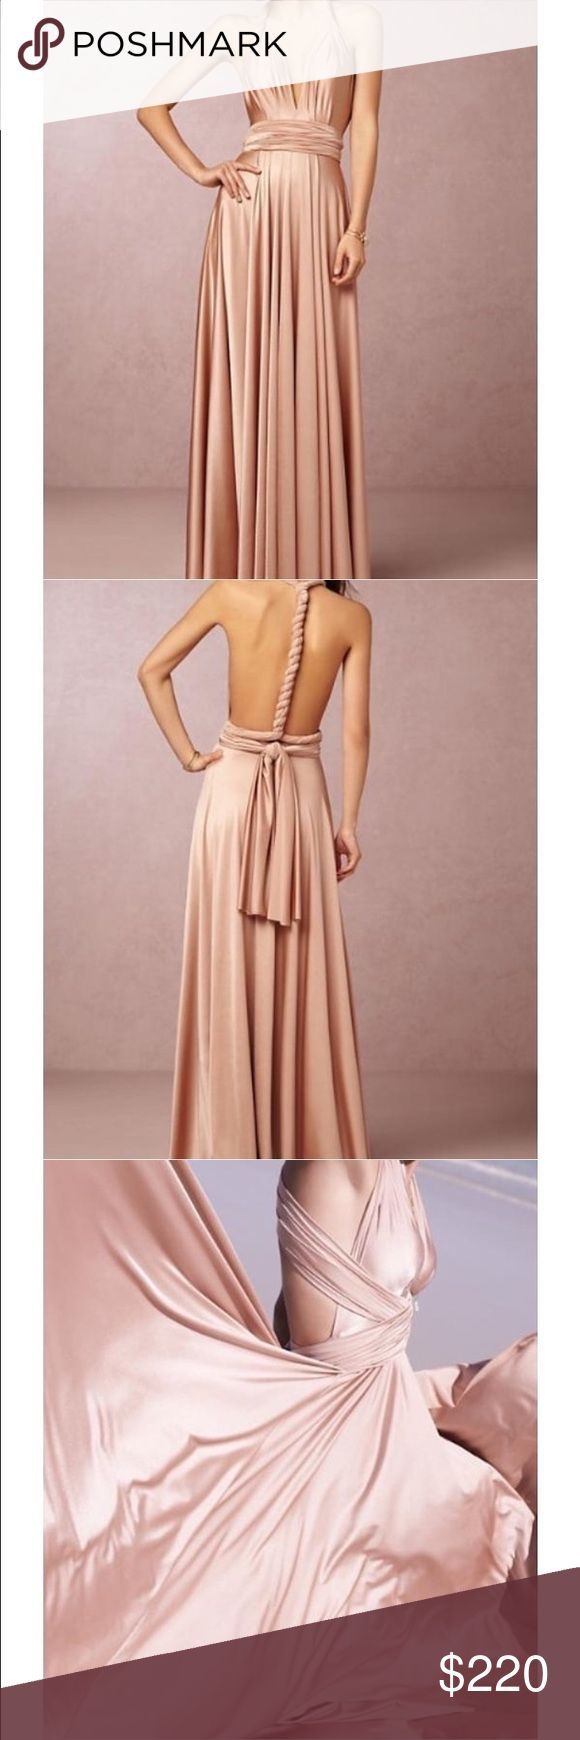 Bhldn Rose gold wrap dress Rose gold wrap dress. Wore once as a bridesmaid. Dry cleaned and no alterations. Bhldn Dresses Wedding Women, Men and Kids Outfit Ideas on our website at 7ootd.com #ootd #7ootd